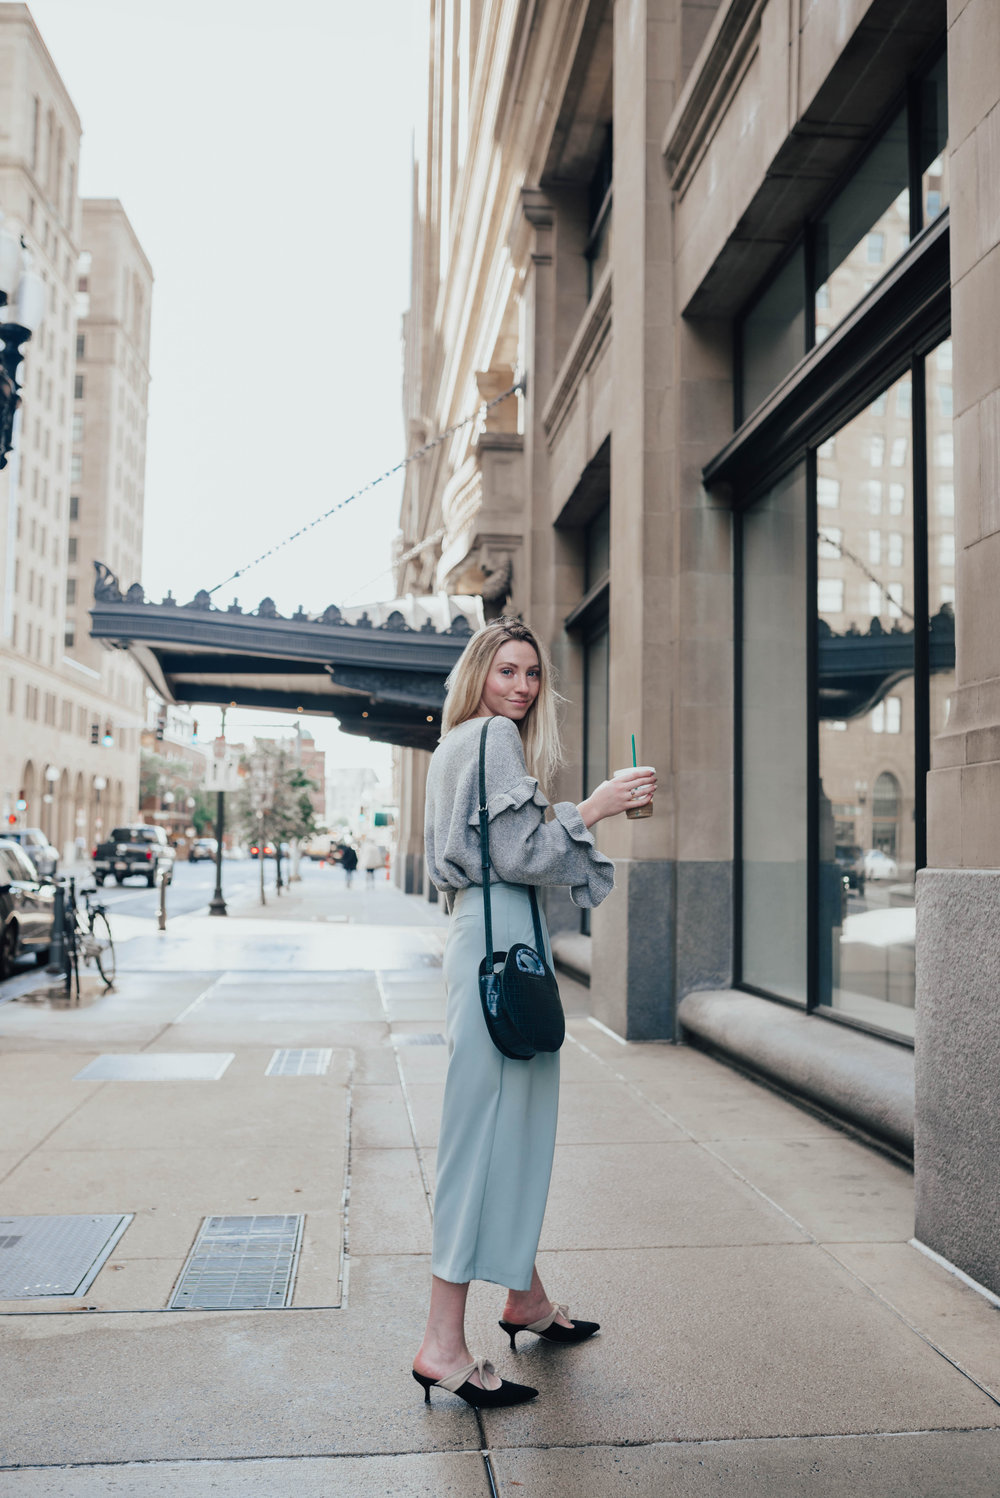 Ruffle Sweater Outfit | @maevestier